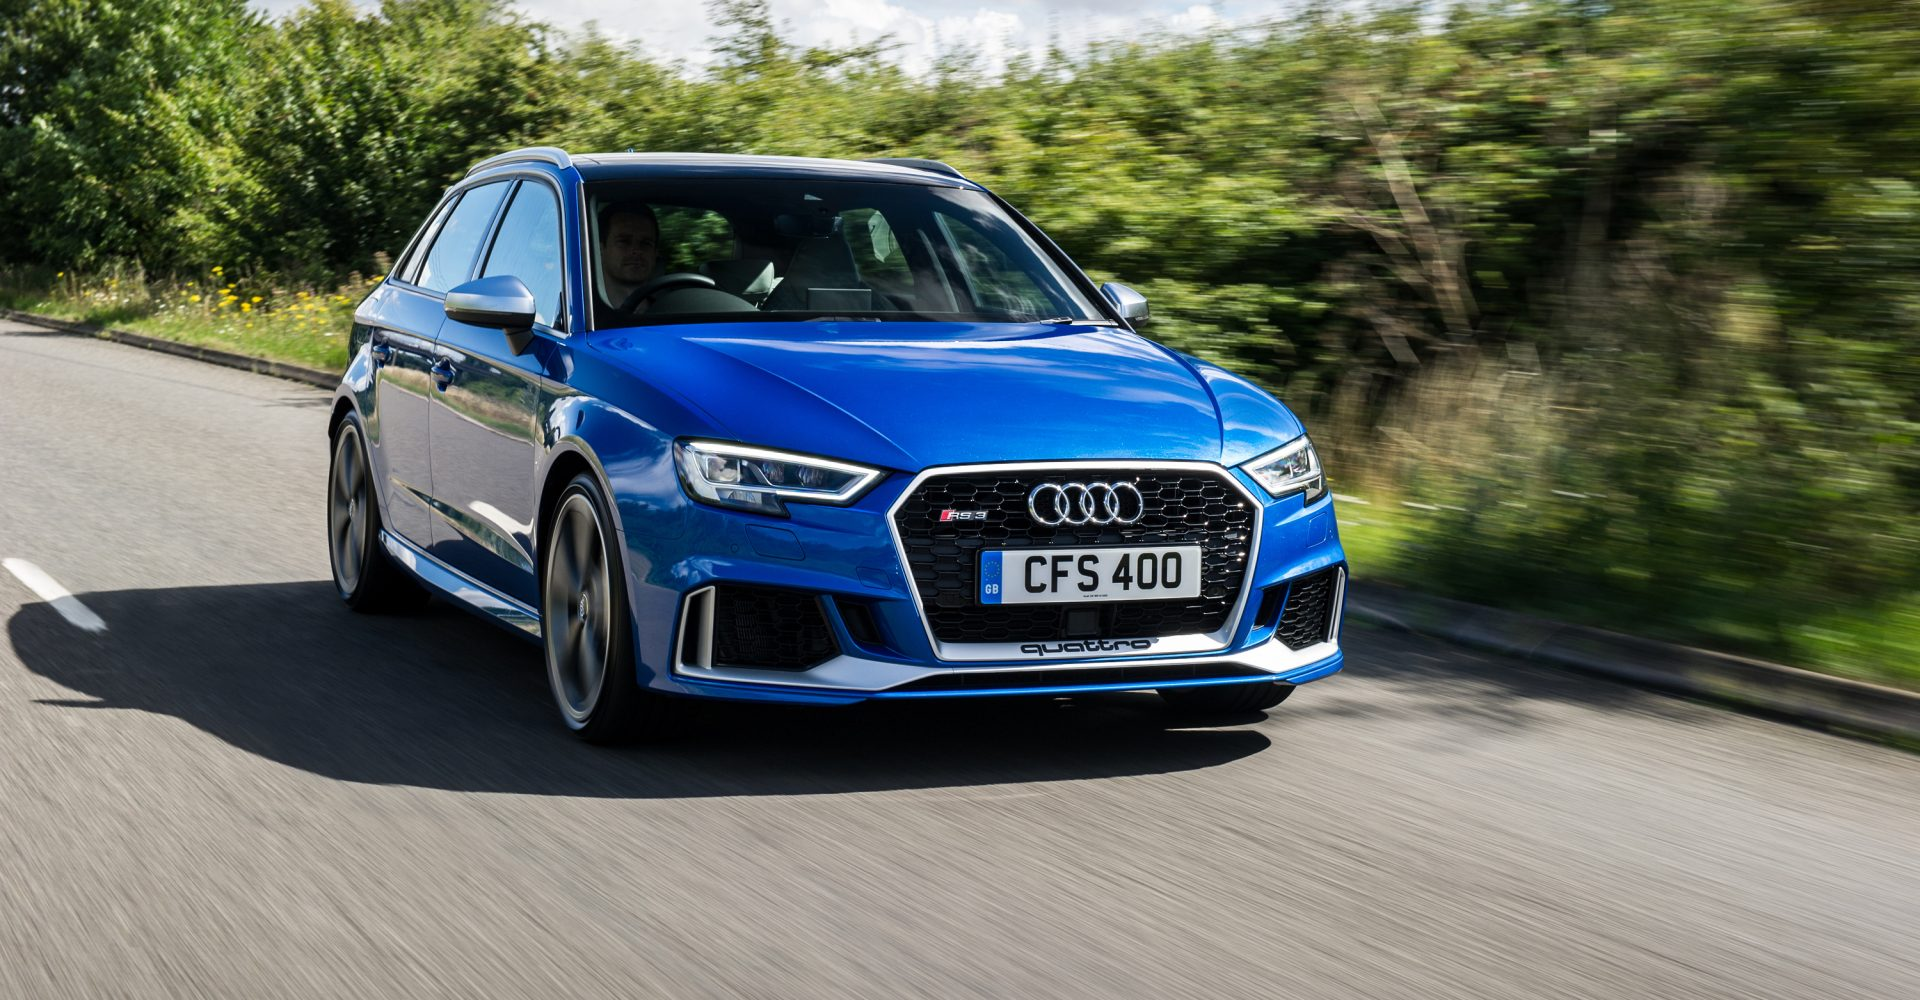 5 cool things we learnt driving the new Audi RS3